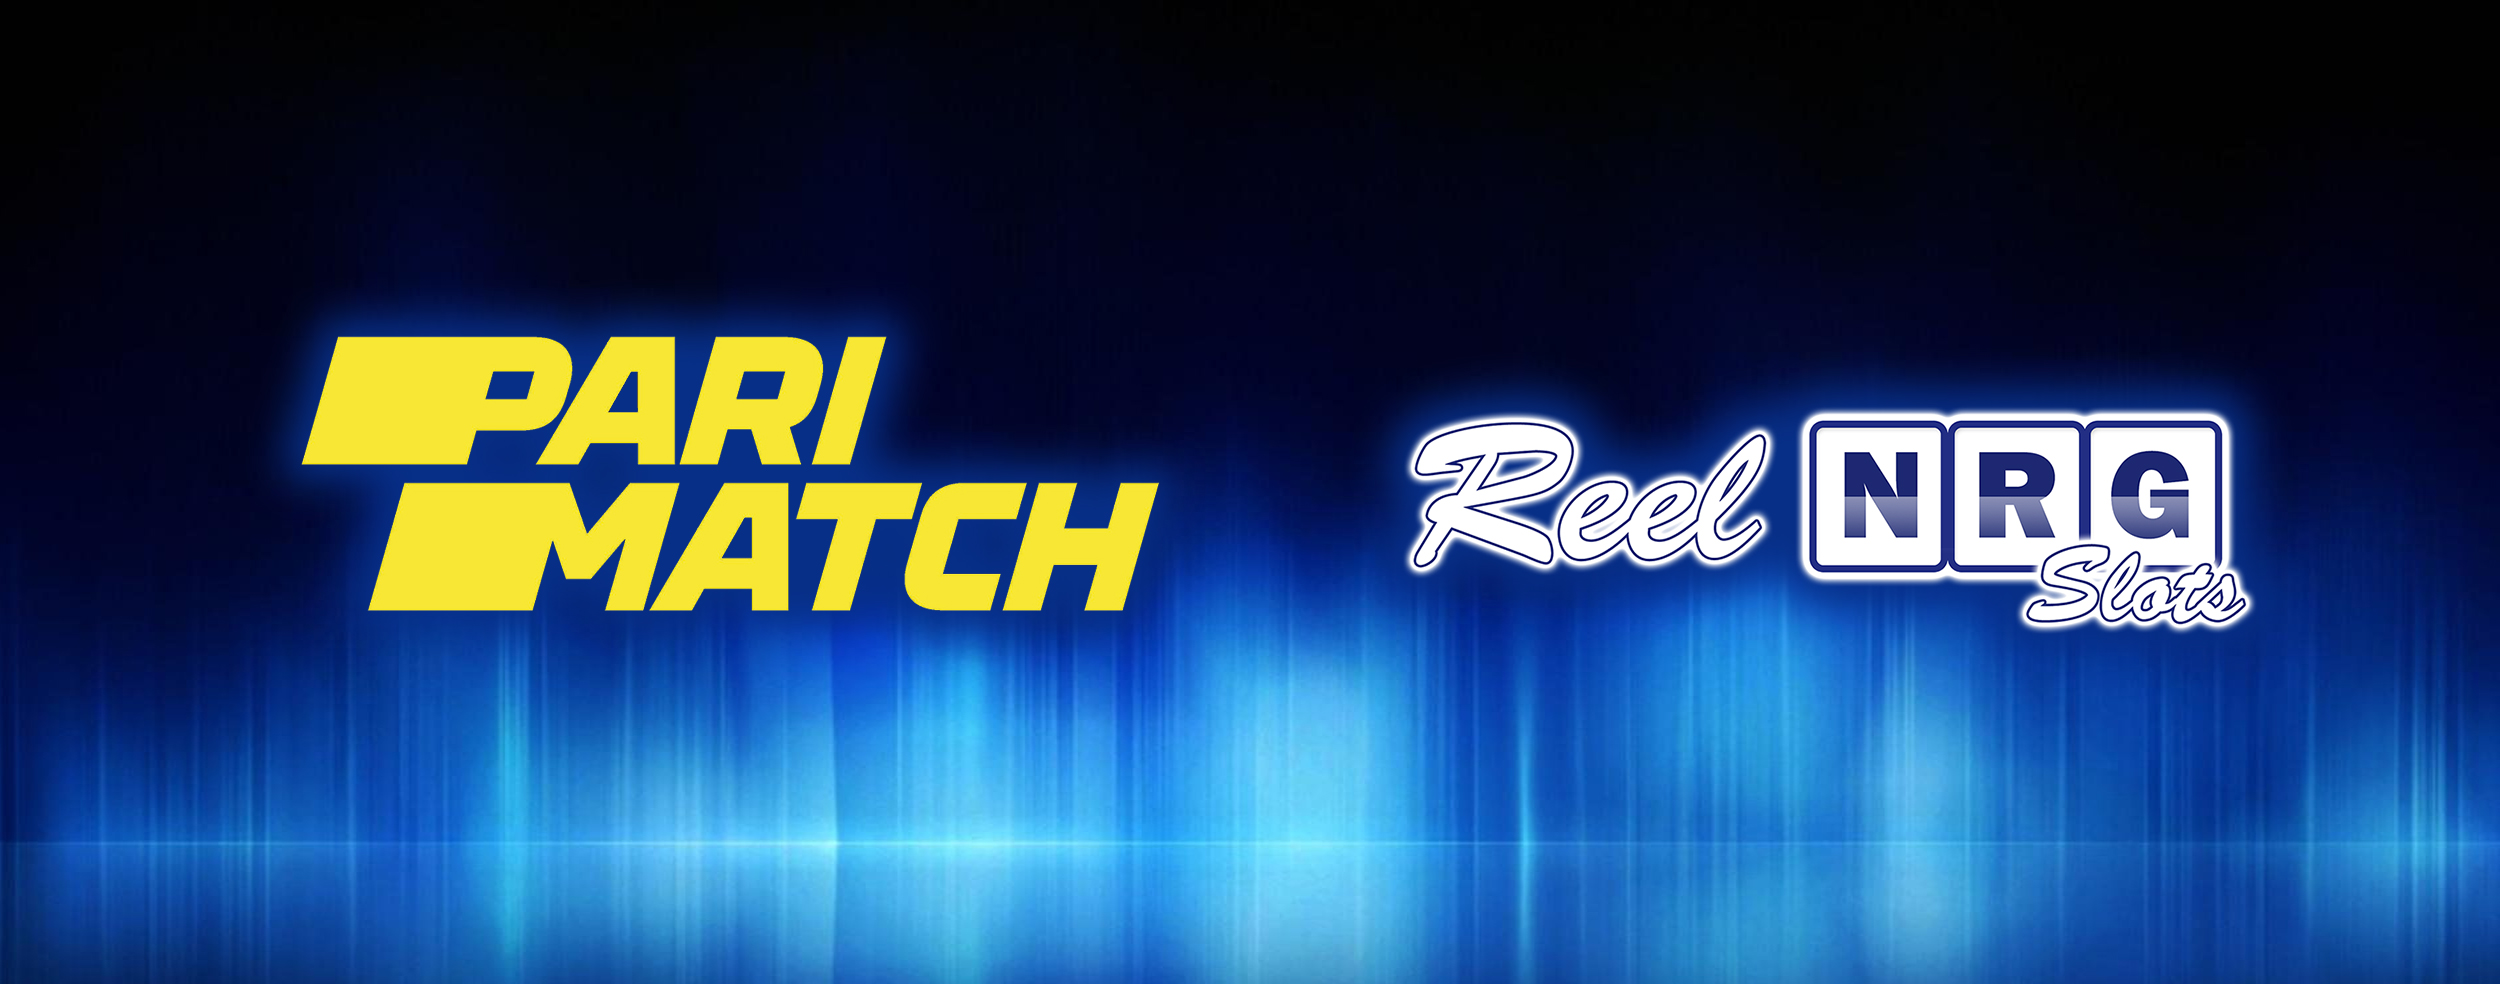 ReelNRG Slots Go Live with Parimatch